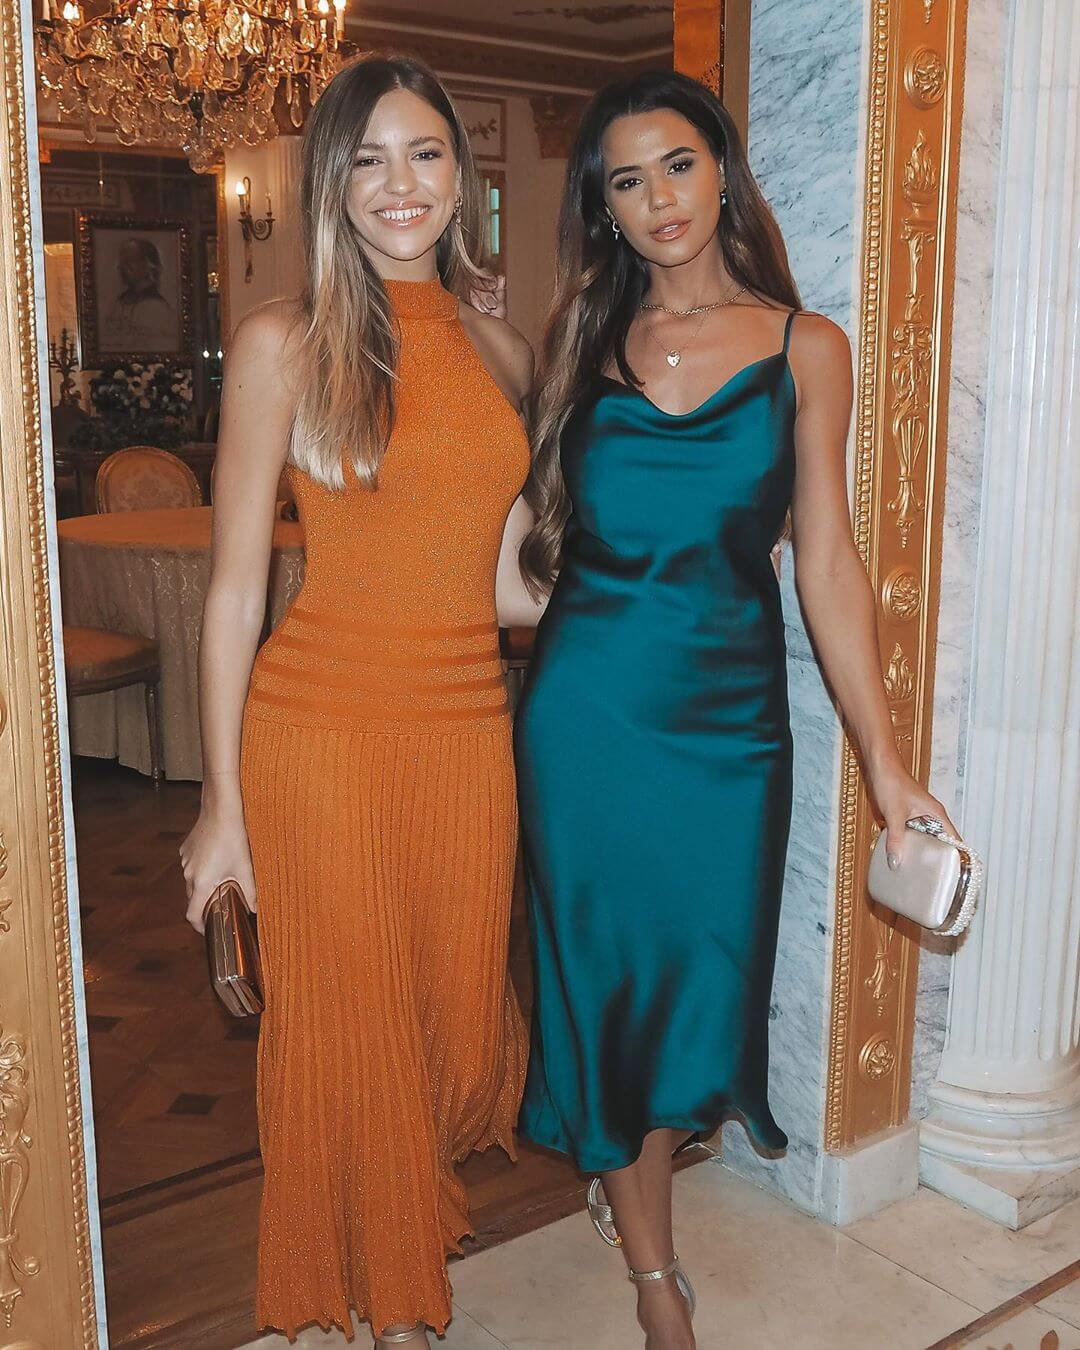 Two models in wear a green cowl neck satin cami midi dress and a high neck pleated metallic midi dress in a hotel room